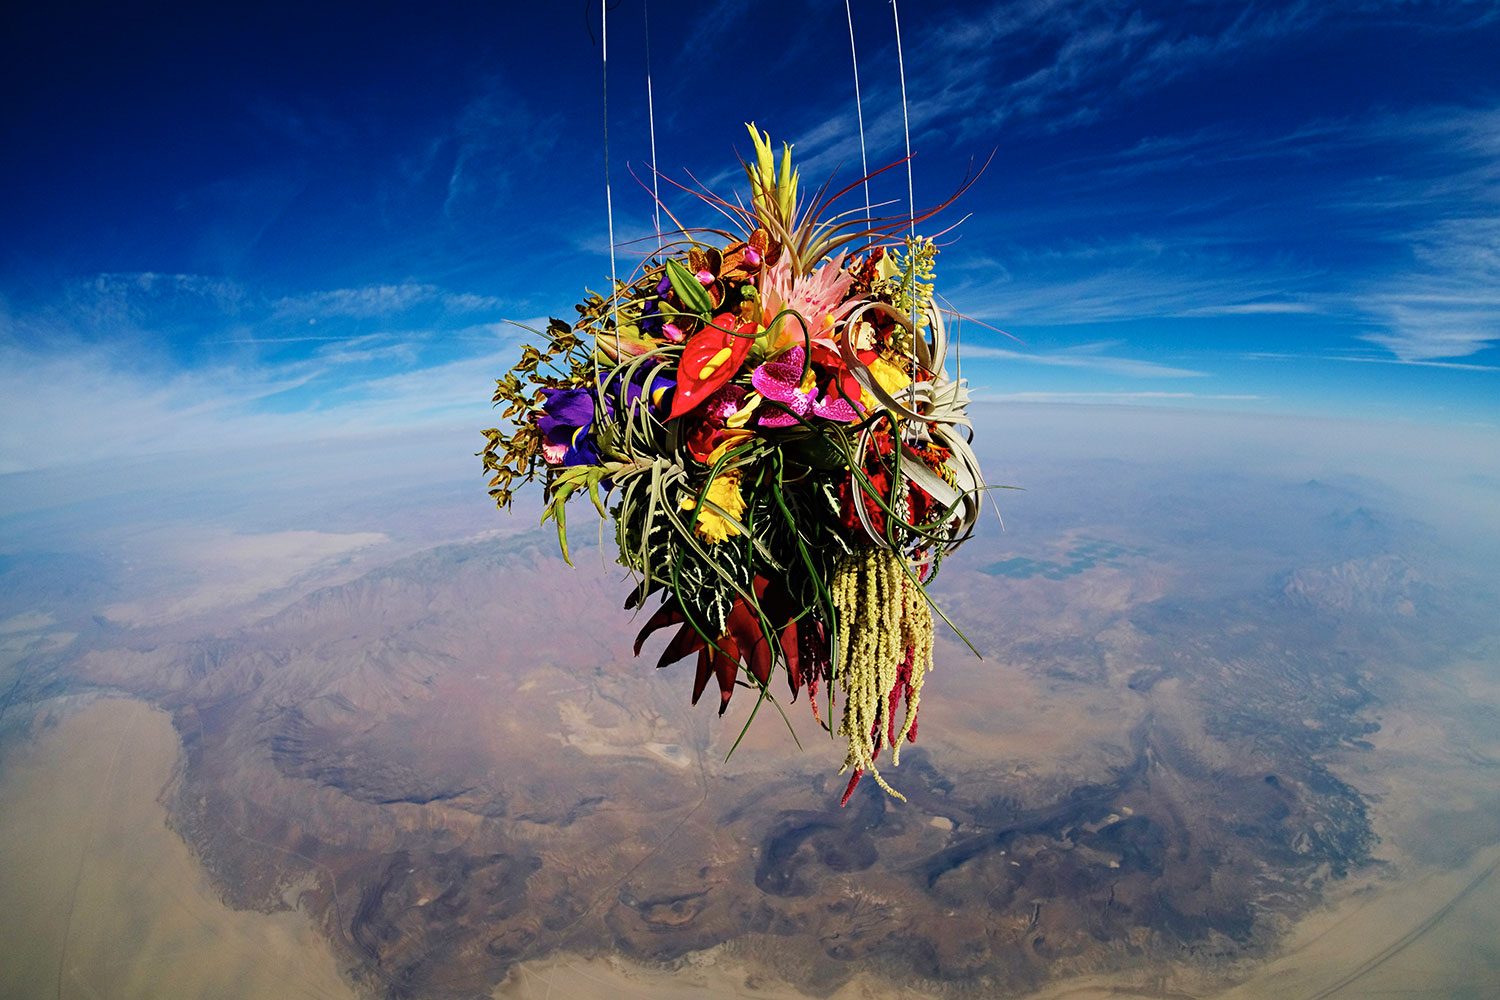 Exobiotanica – Botanical Space Flight